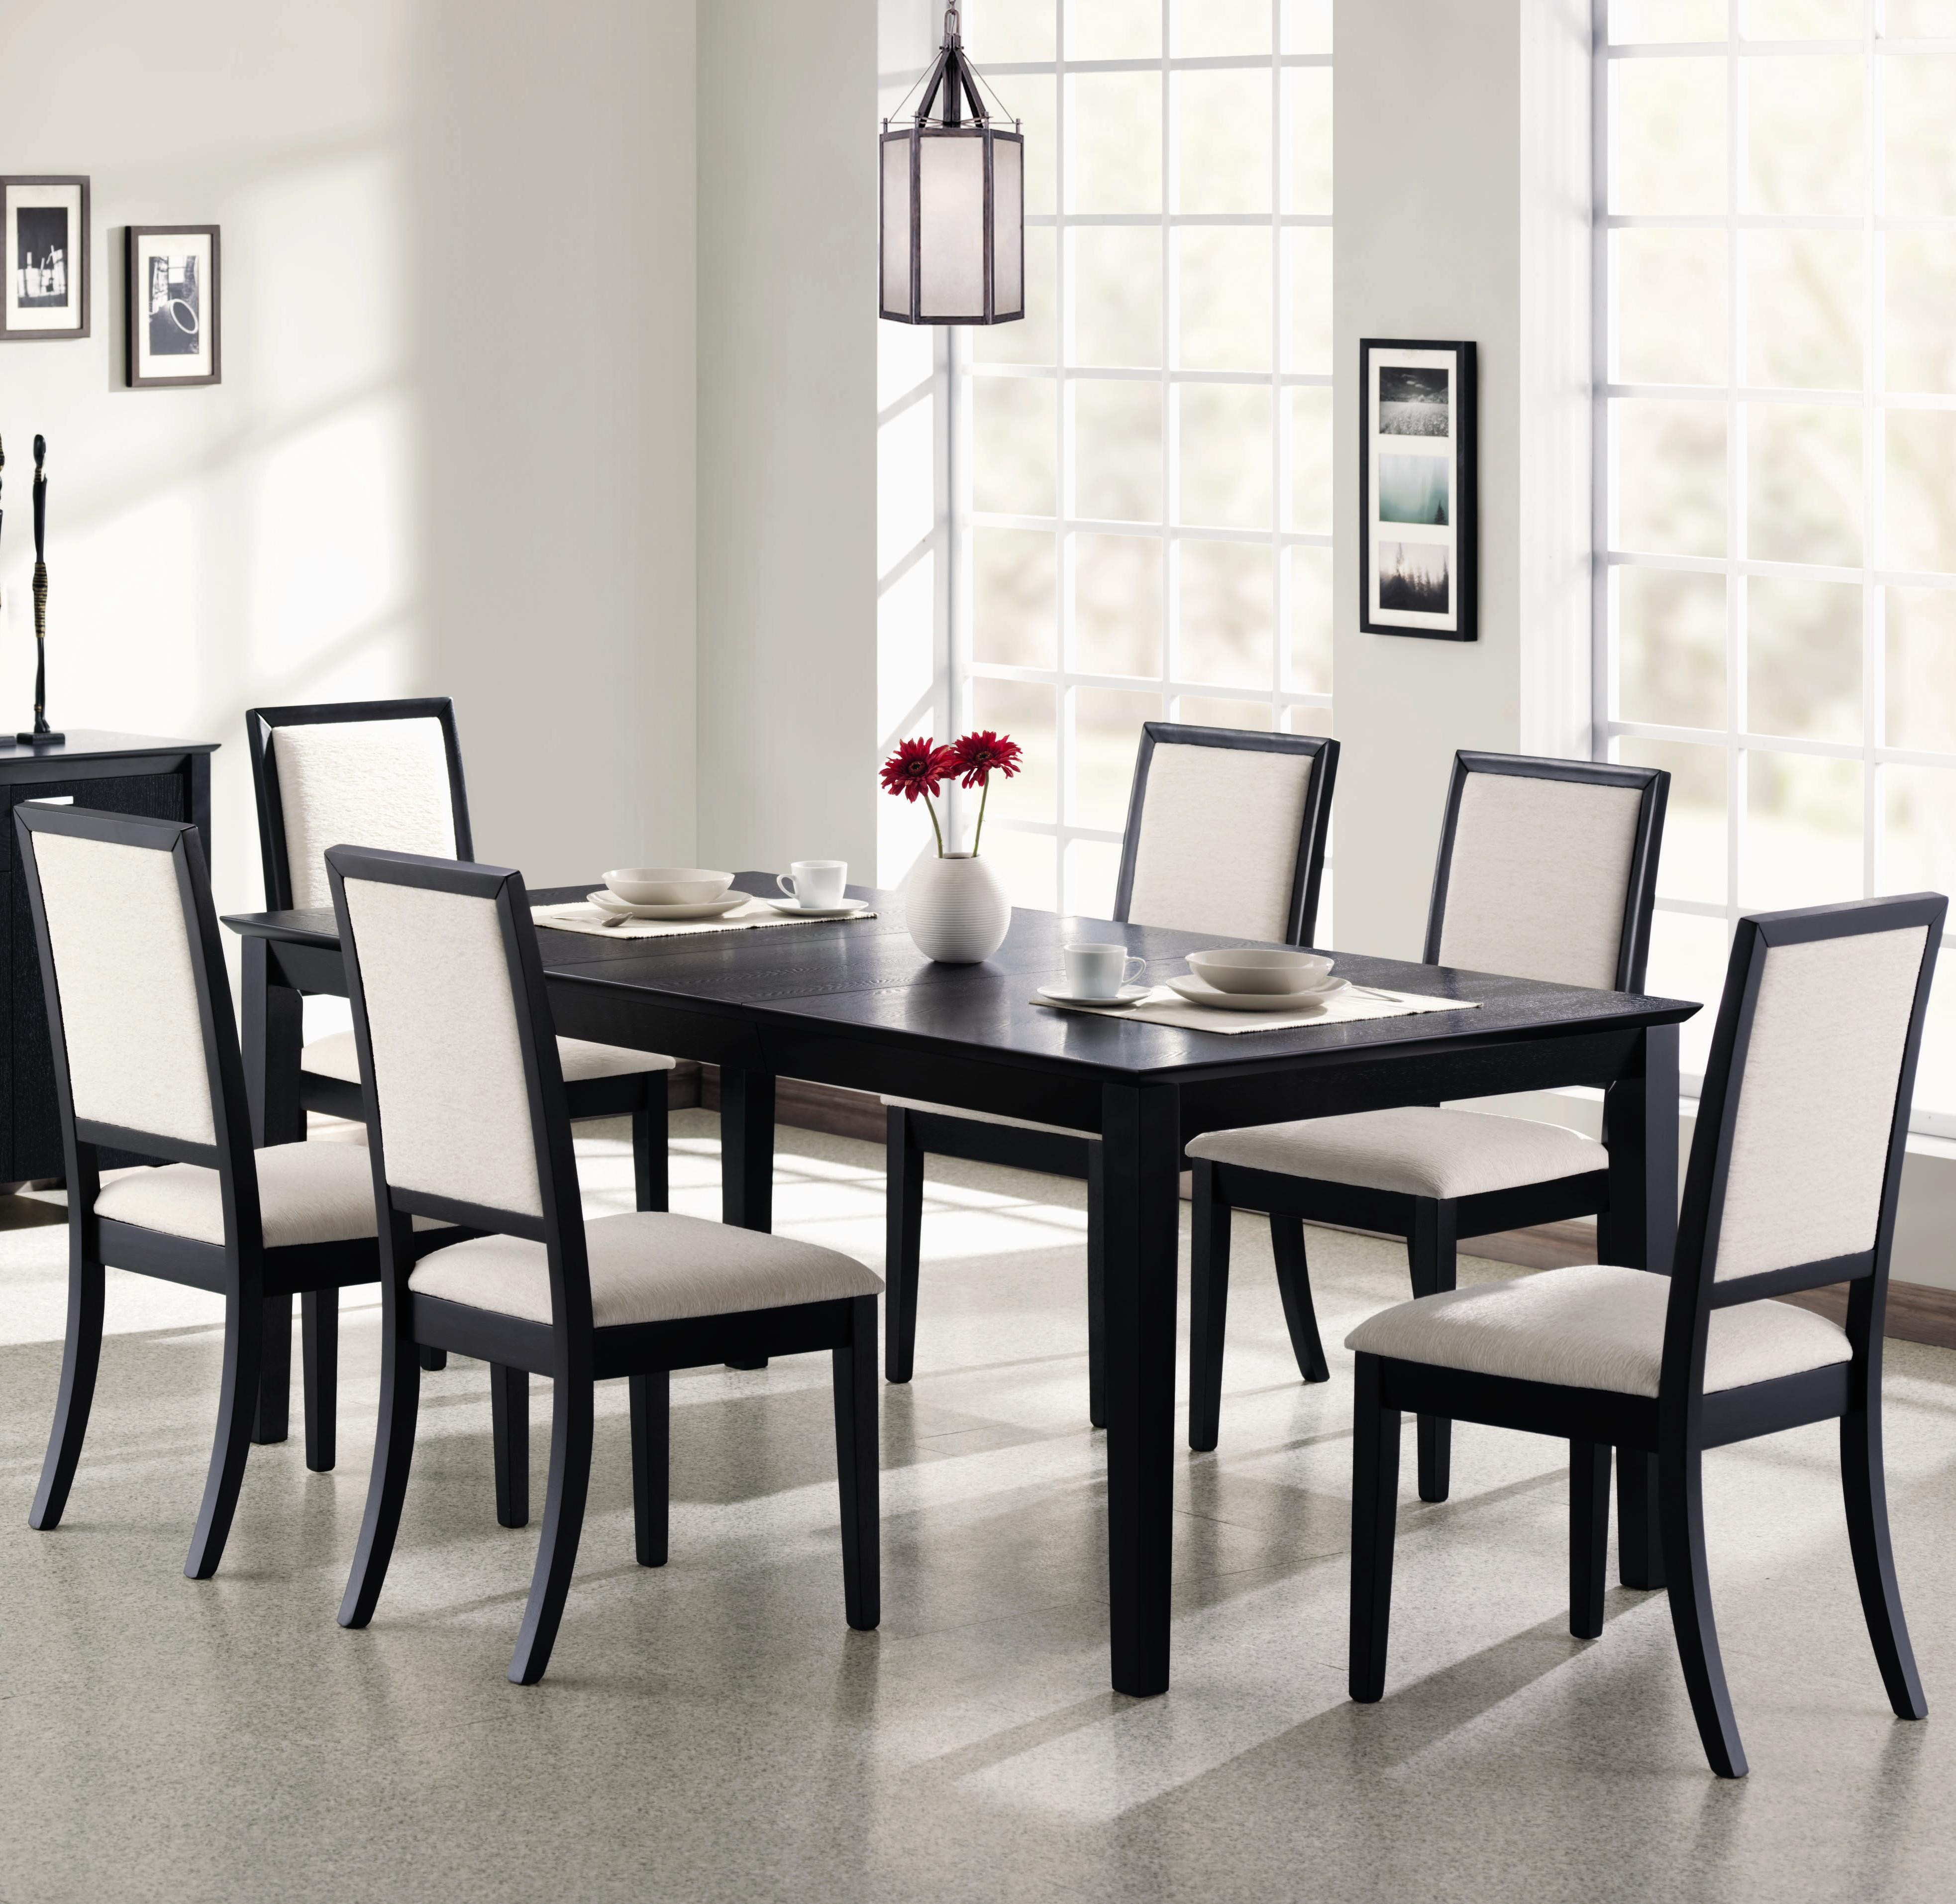 Lexton 7 Piece Dining Set by Coaster at Northeast Factory Direct